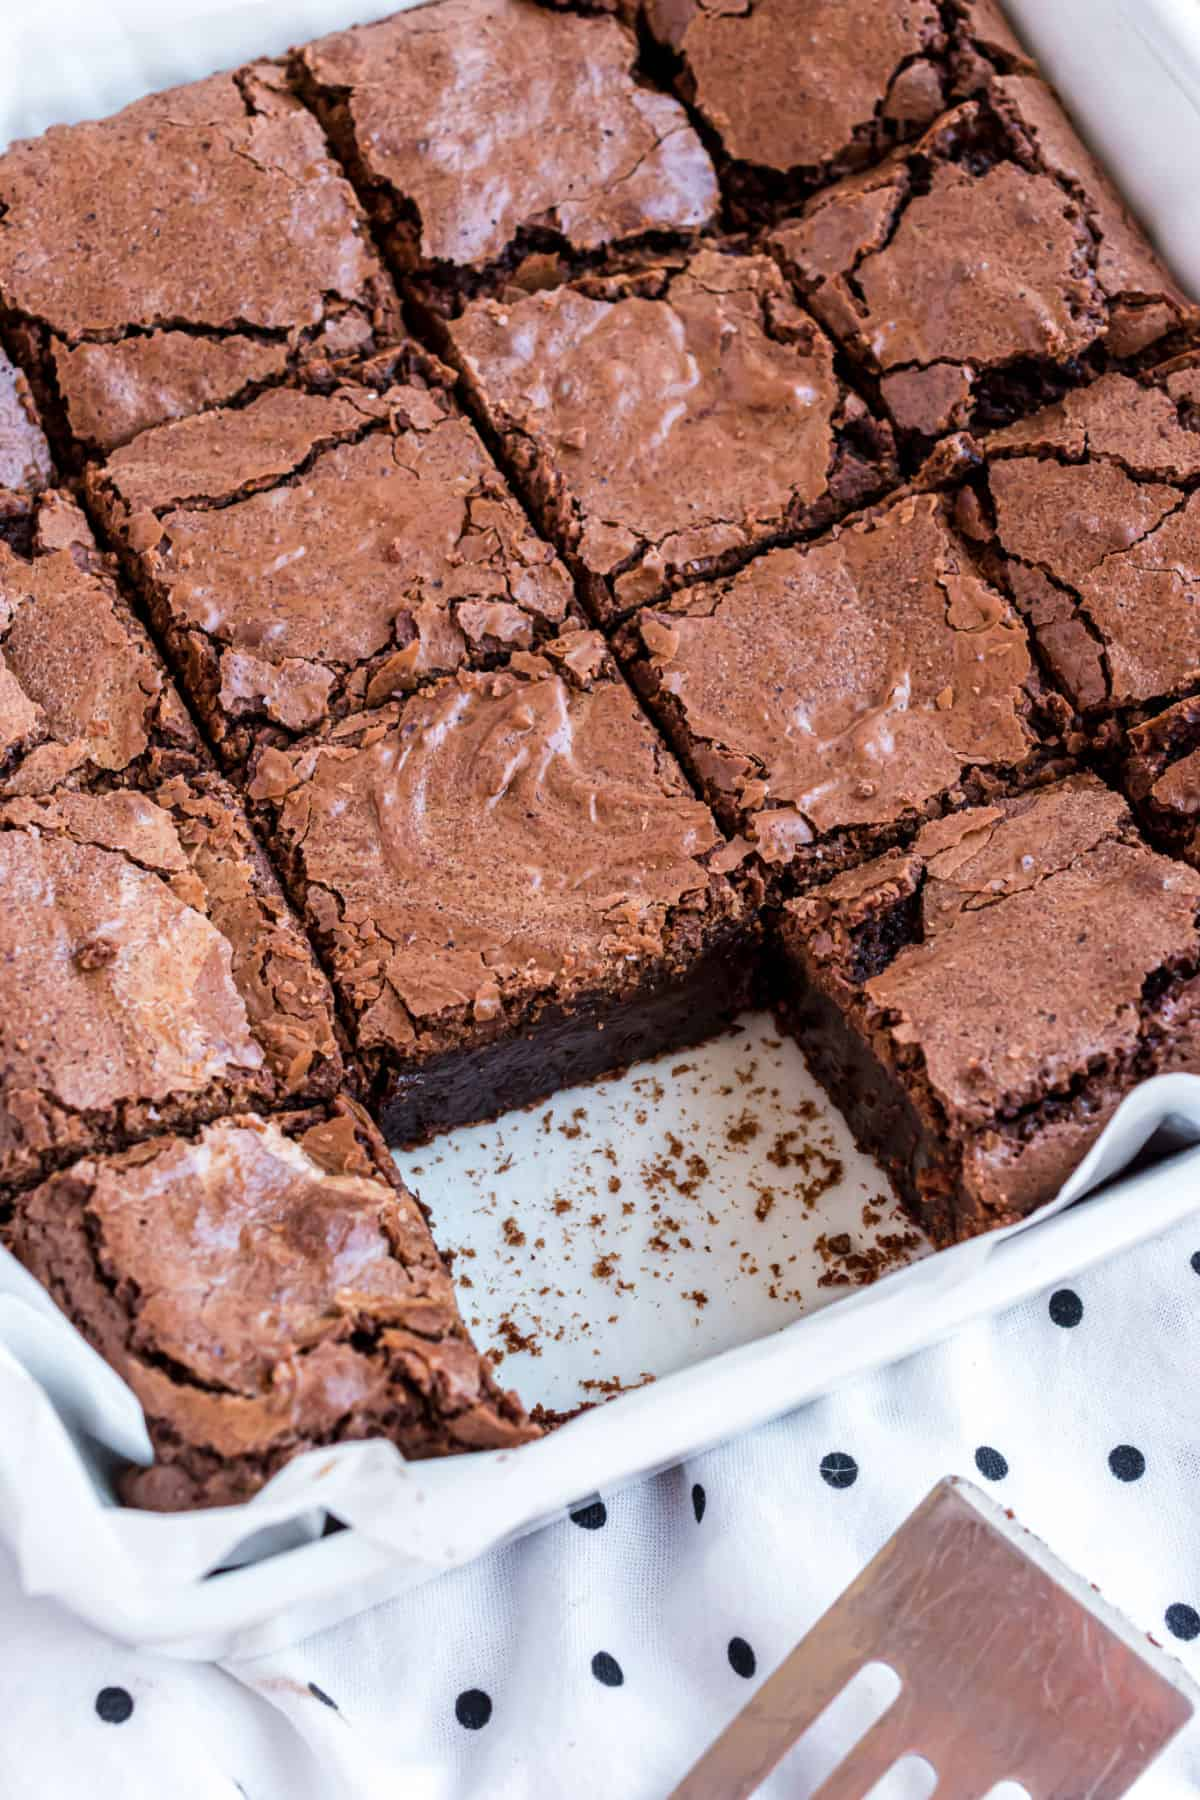 Pan of fudgy brownies with one slice removed.